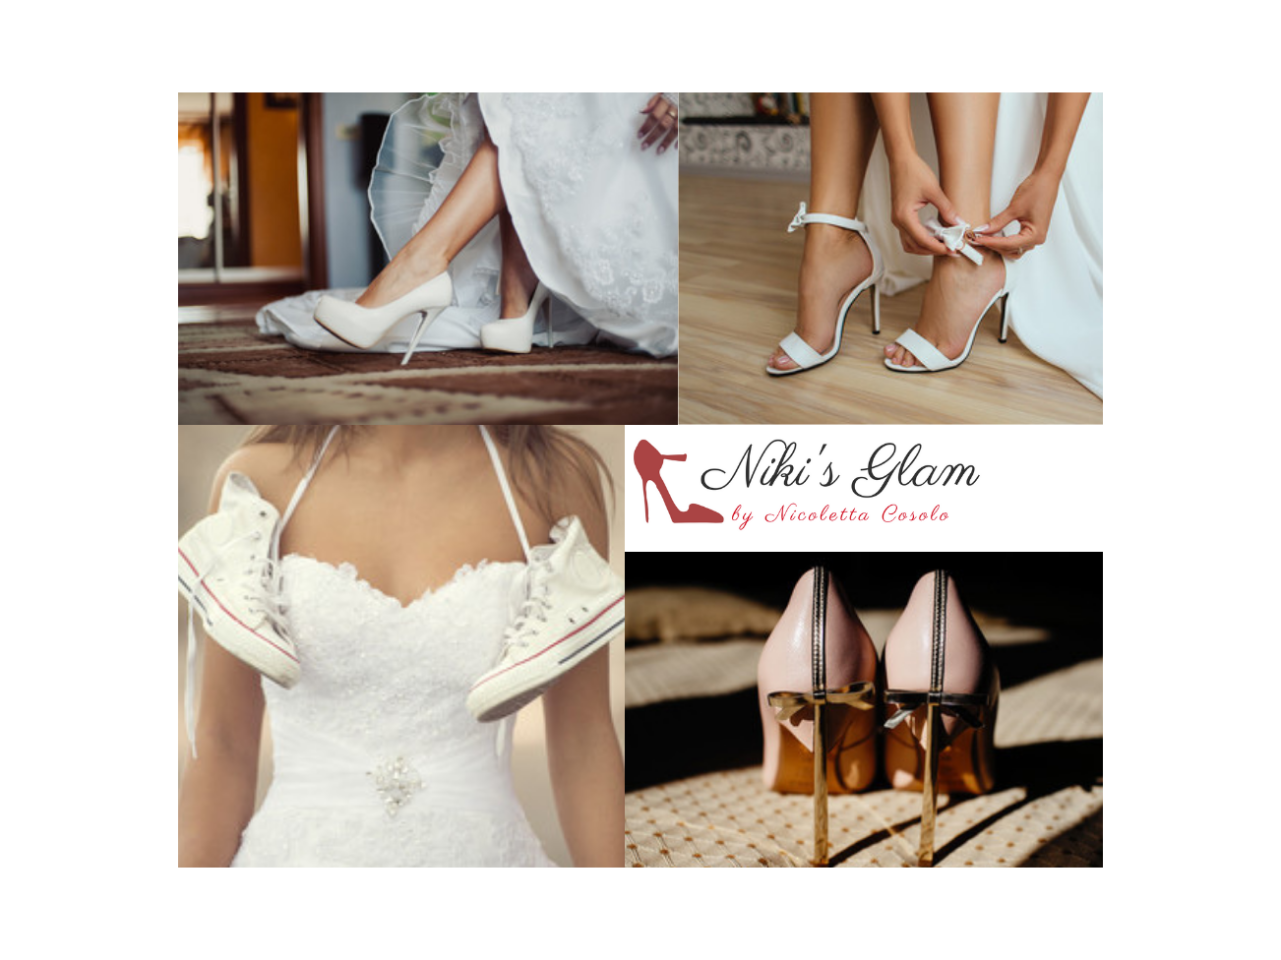 Bridal shoes, come sceglierle? - Niki's Glam Blog